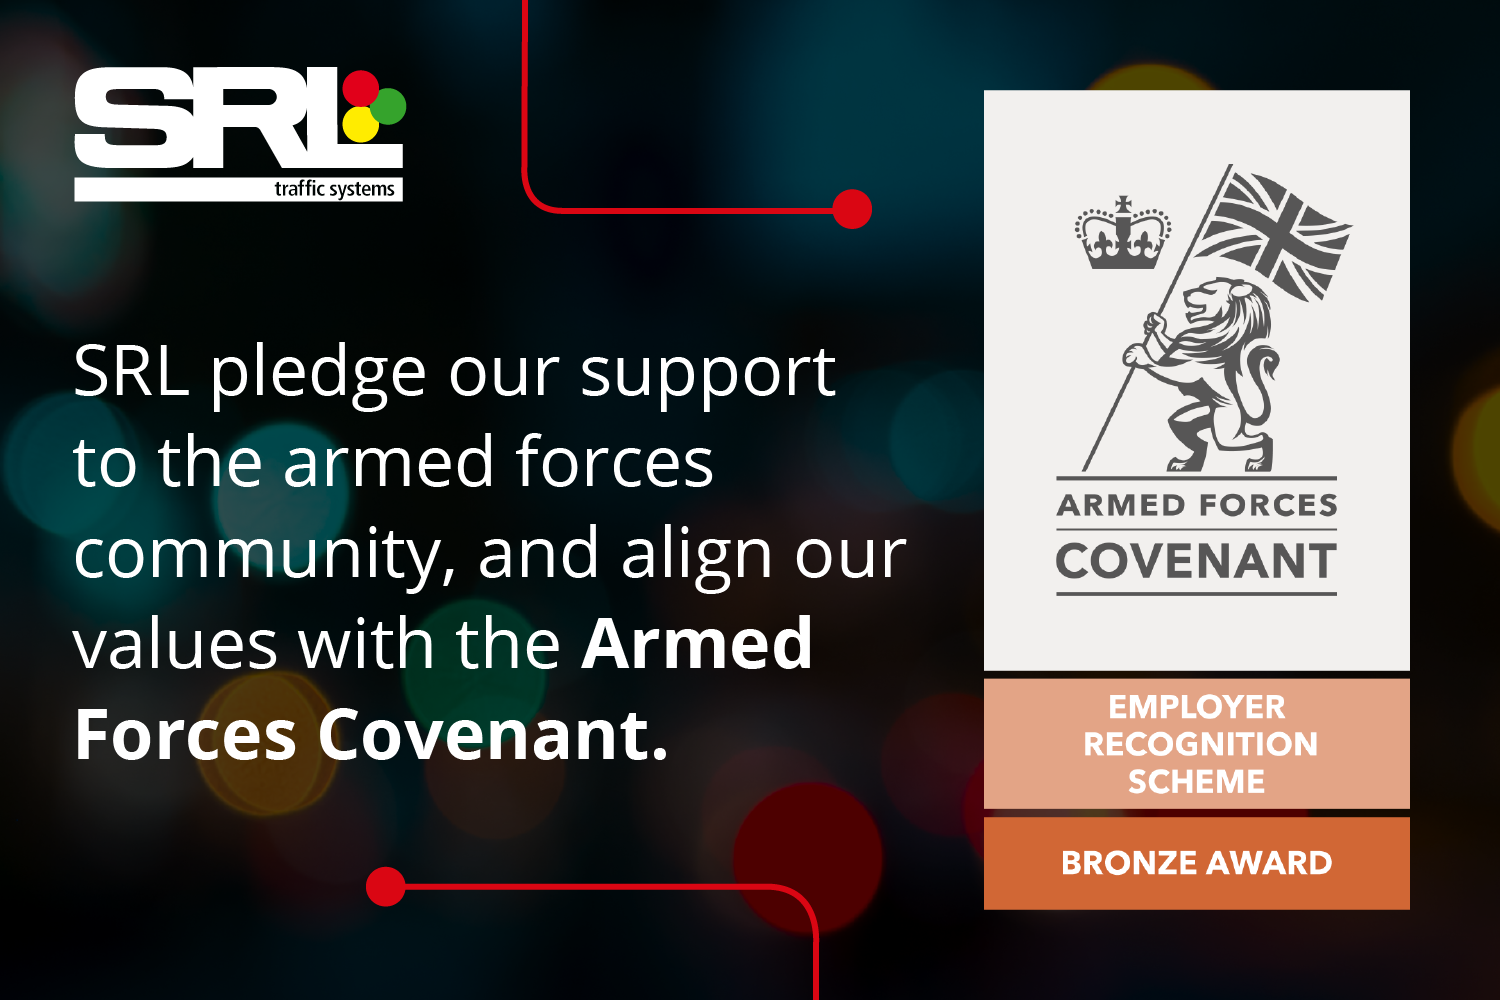 SRL honoured to receive Armed Forces Covenant – Employer Recognition Scheme Bronze Award